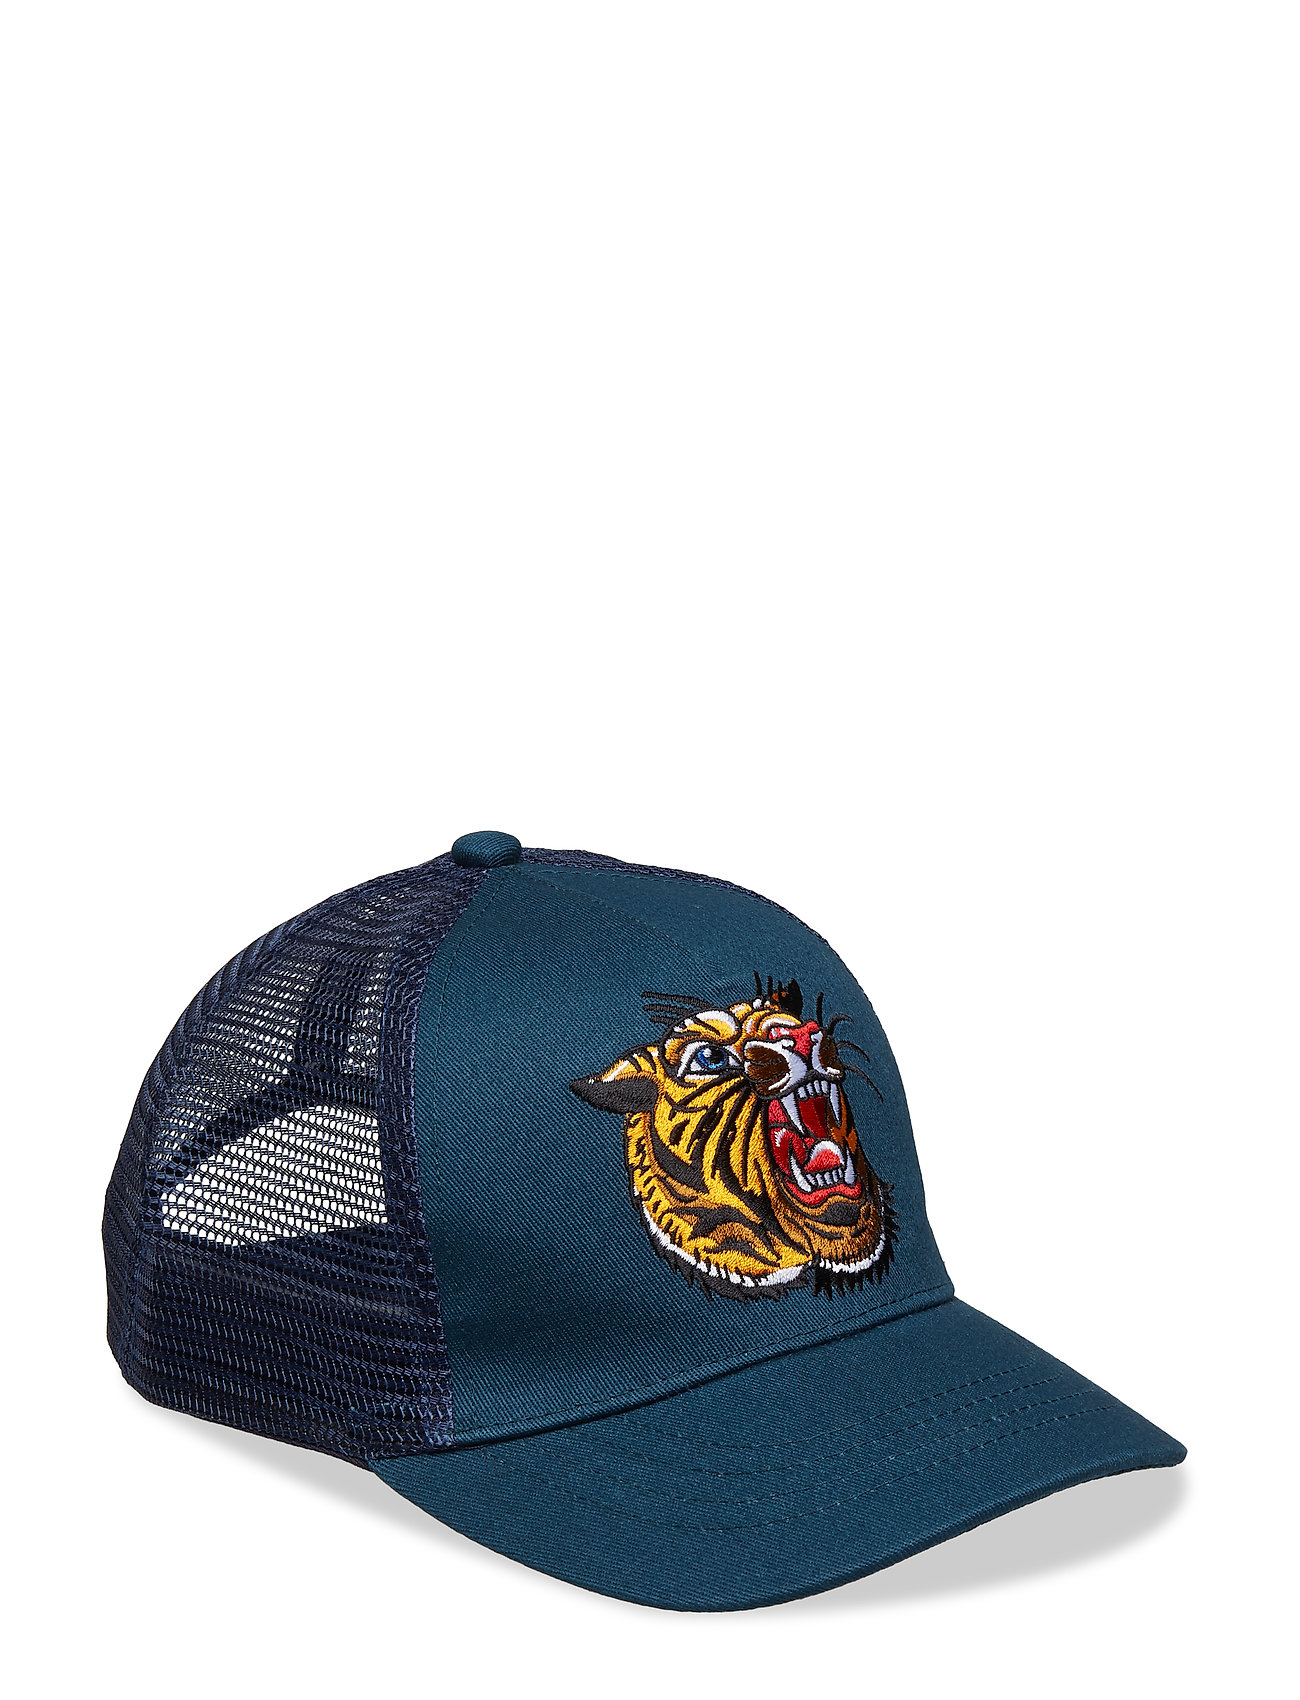 Image of Jachagen Trucker Cap Junior (3121461069)